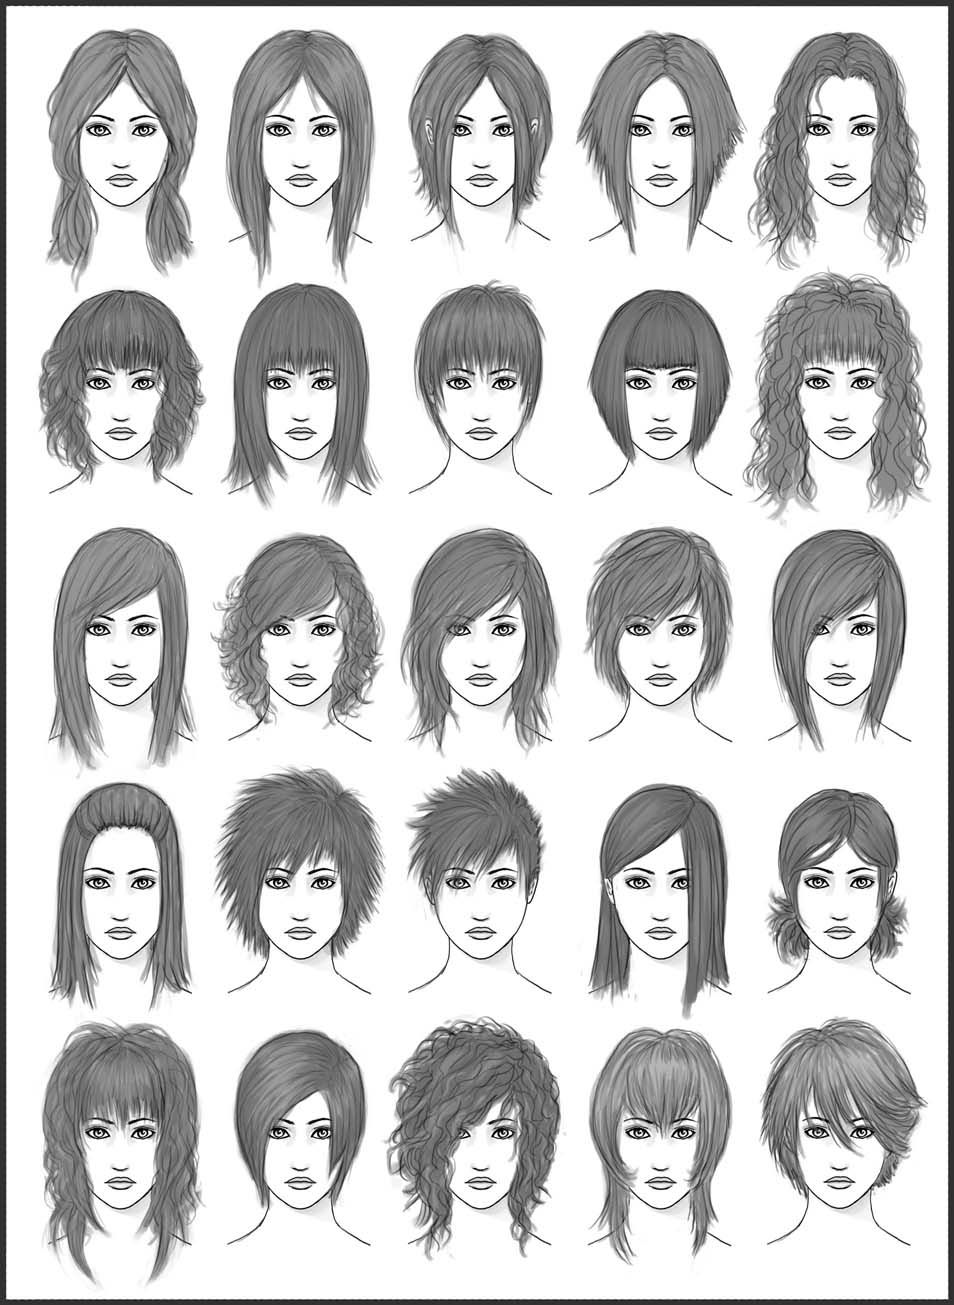 Tremendous 1000 Images About Drawing Hair On Pinterest Hair Reference Short Hairstyles Gunalazisus